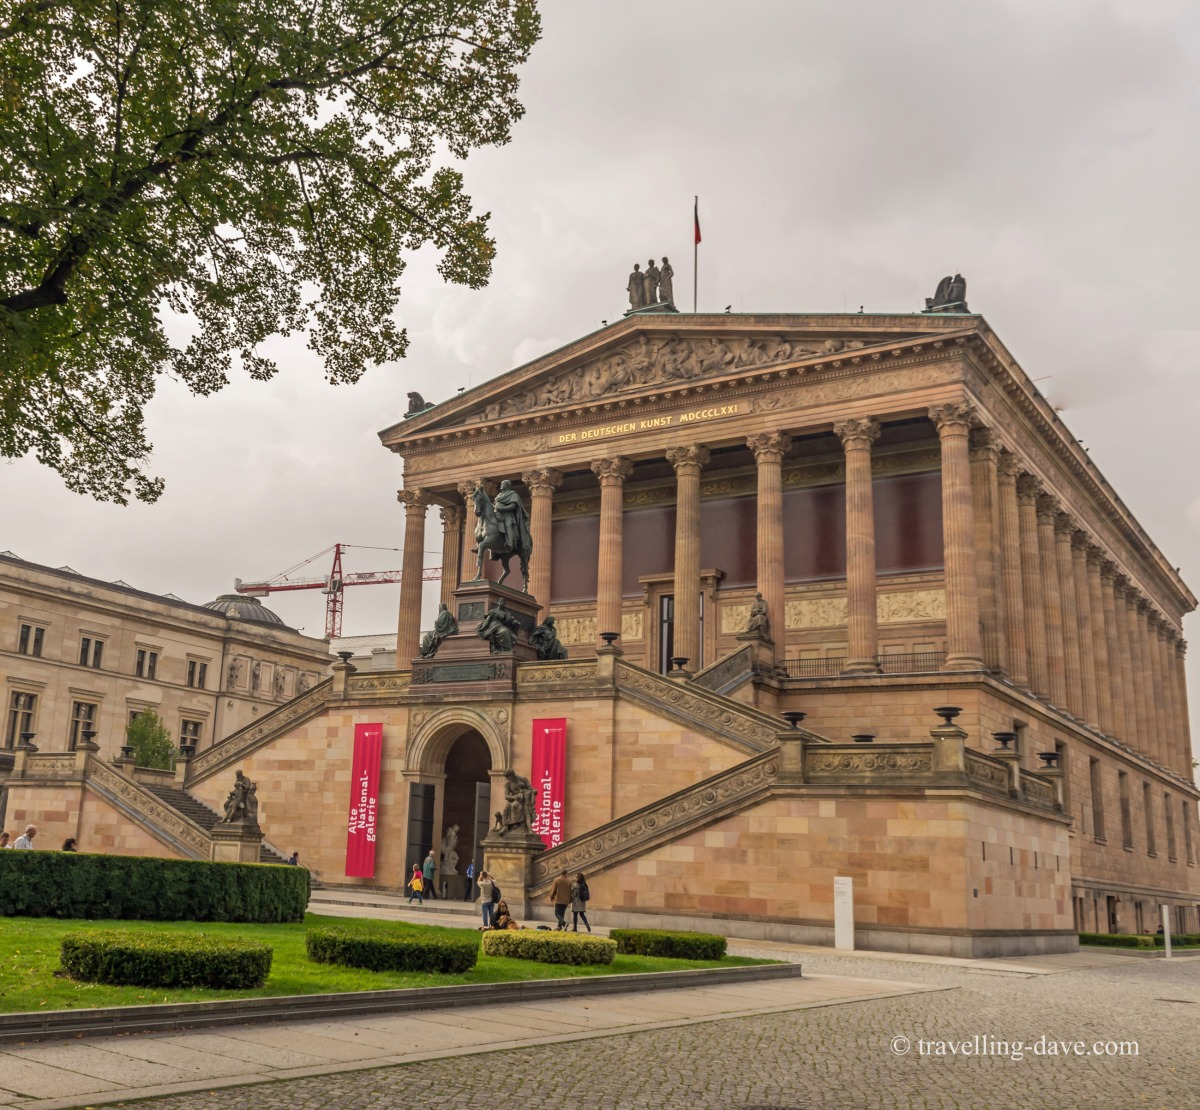 View of the Old National Gallery in Berlin